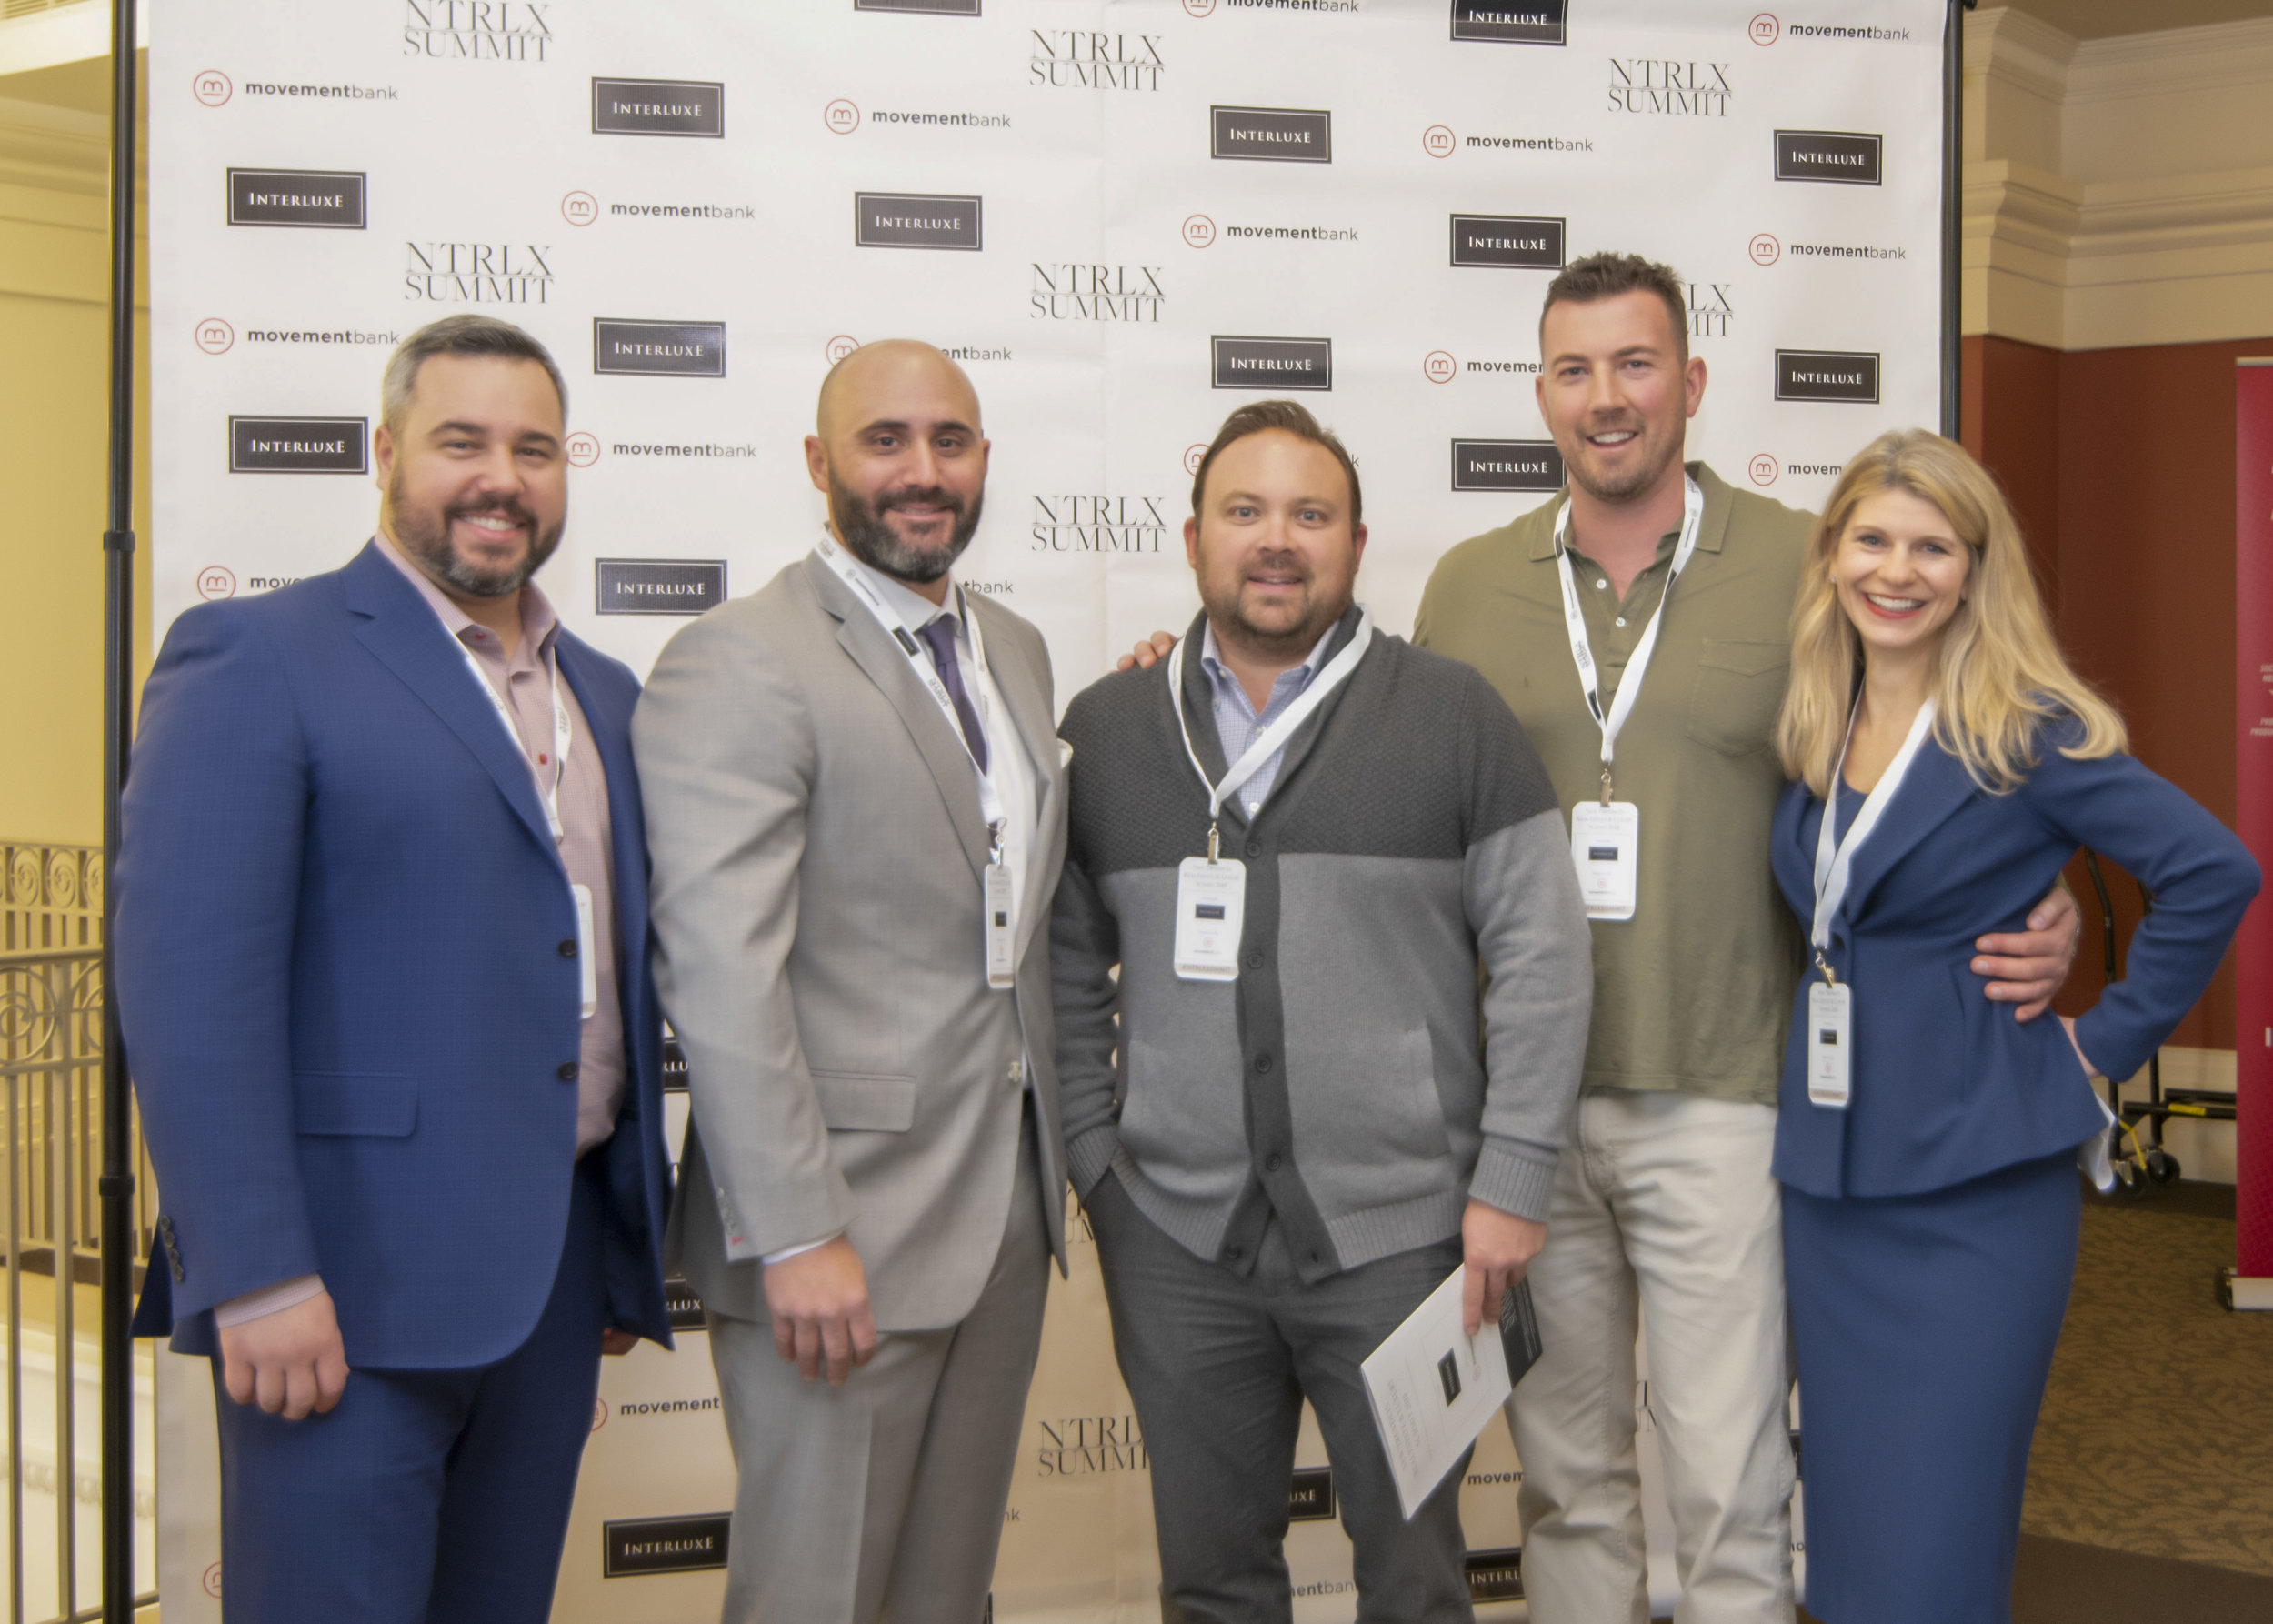 Scott Kirk of Interluxe, Steve Lonnen of Costello, Logan Abrams of REMAX Executive, Tom Bramhall of Charlotte Real Producers, and Stacy Kirk of Interluxe